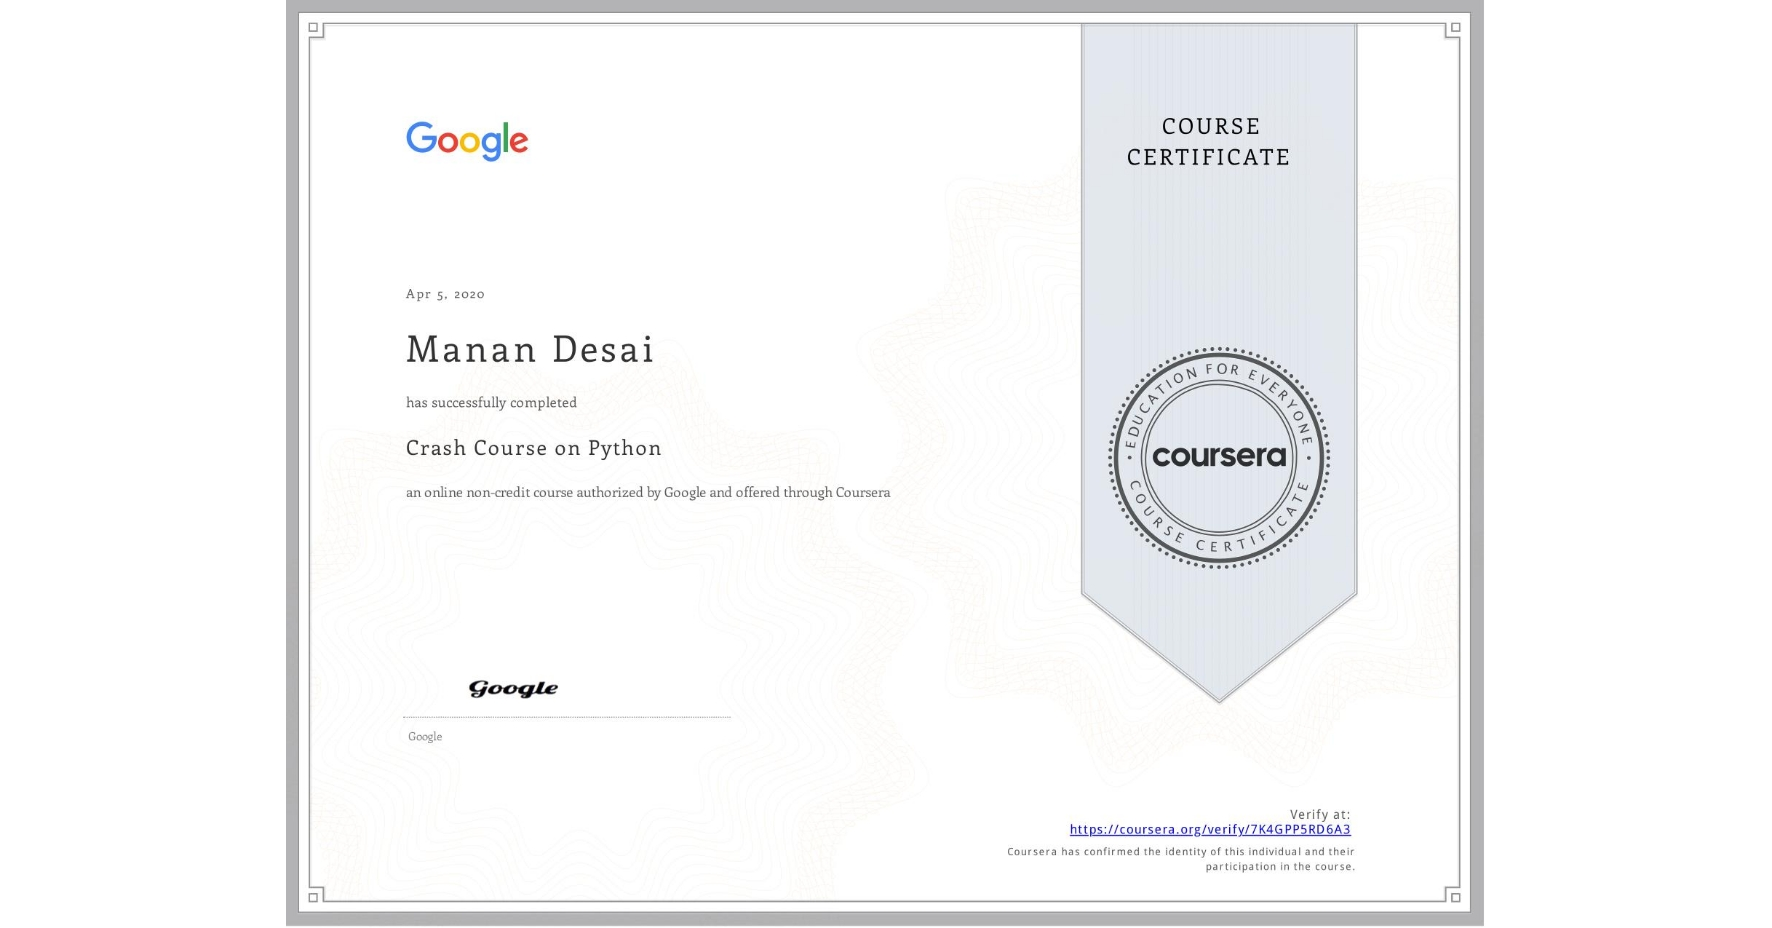 View certificate for Dhhyey Desai, Crash Course on Python, an online non-credit course authorized by Google and offered through Coursera